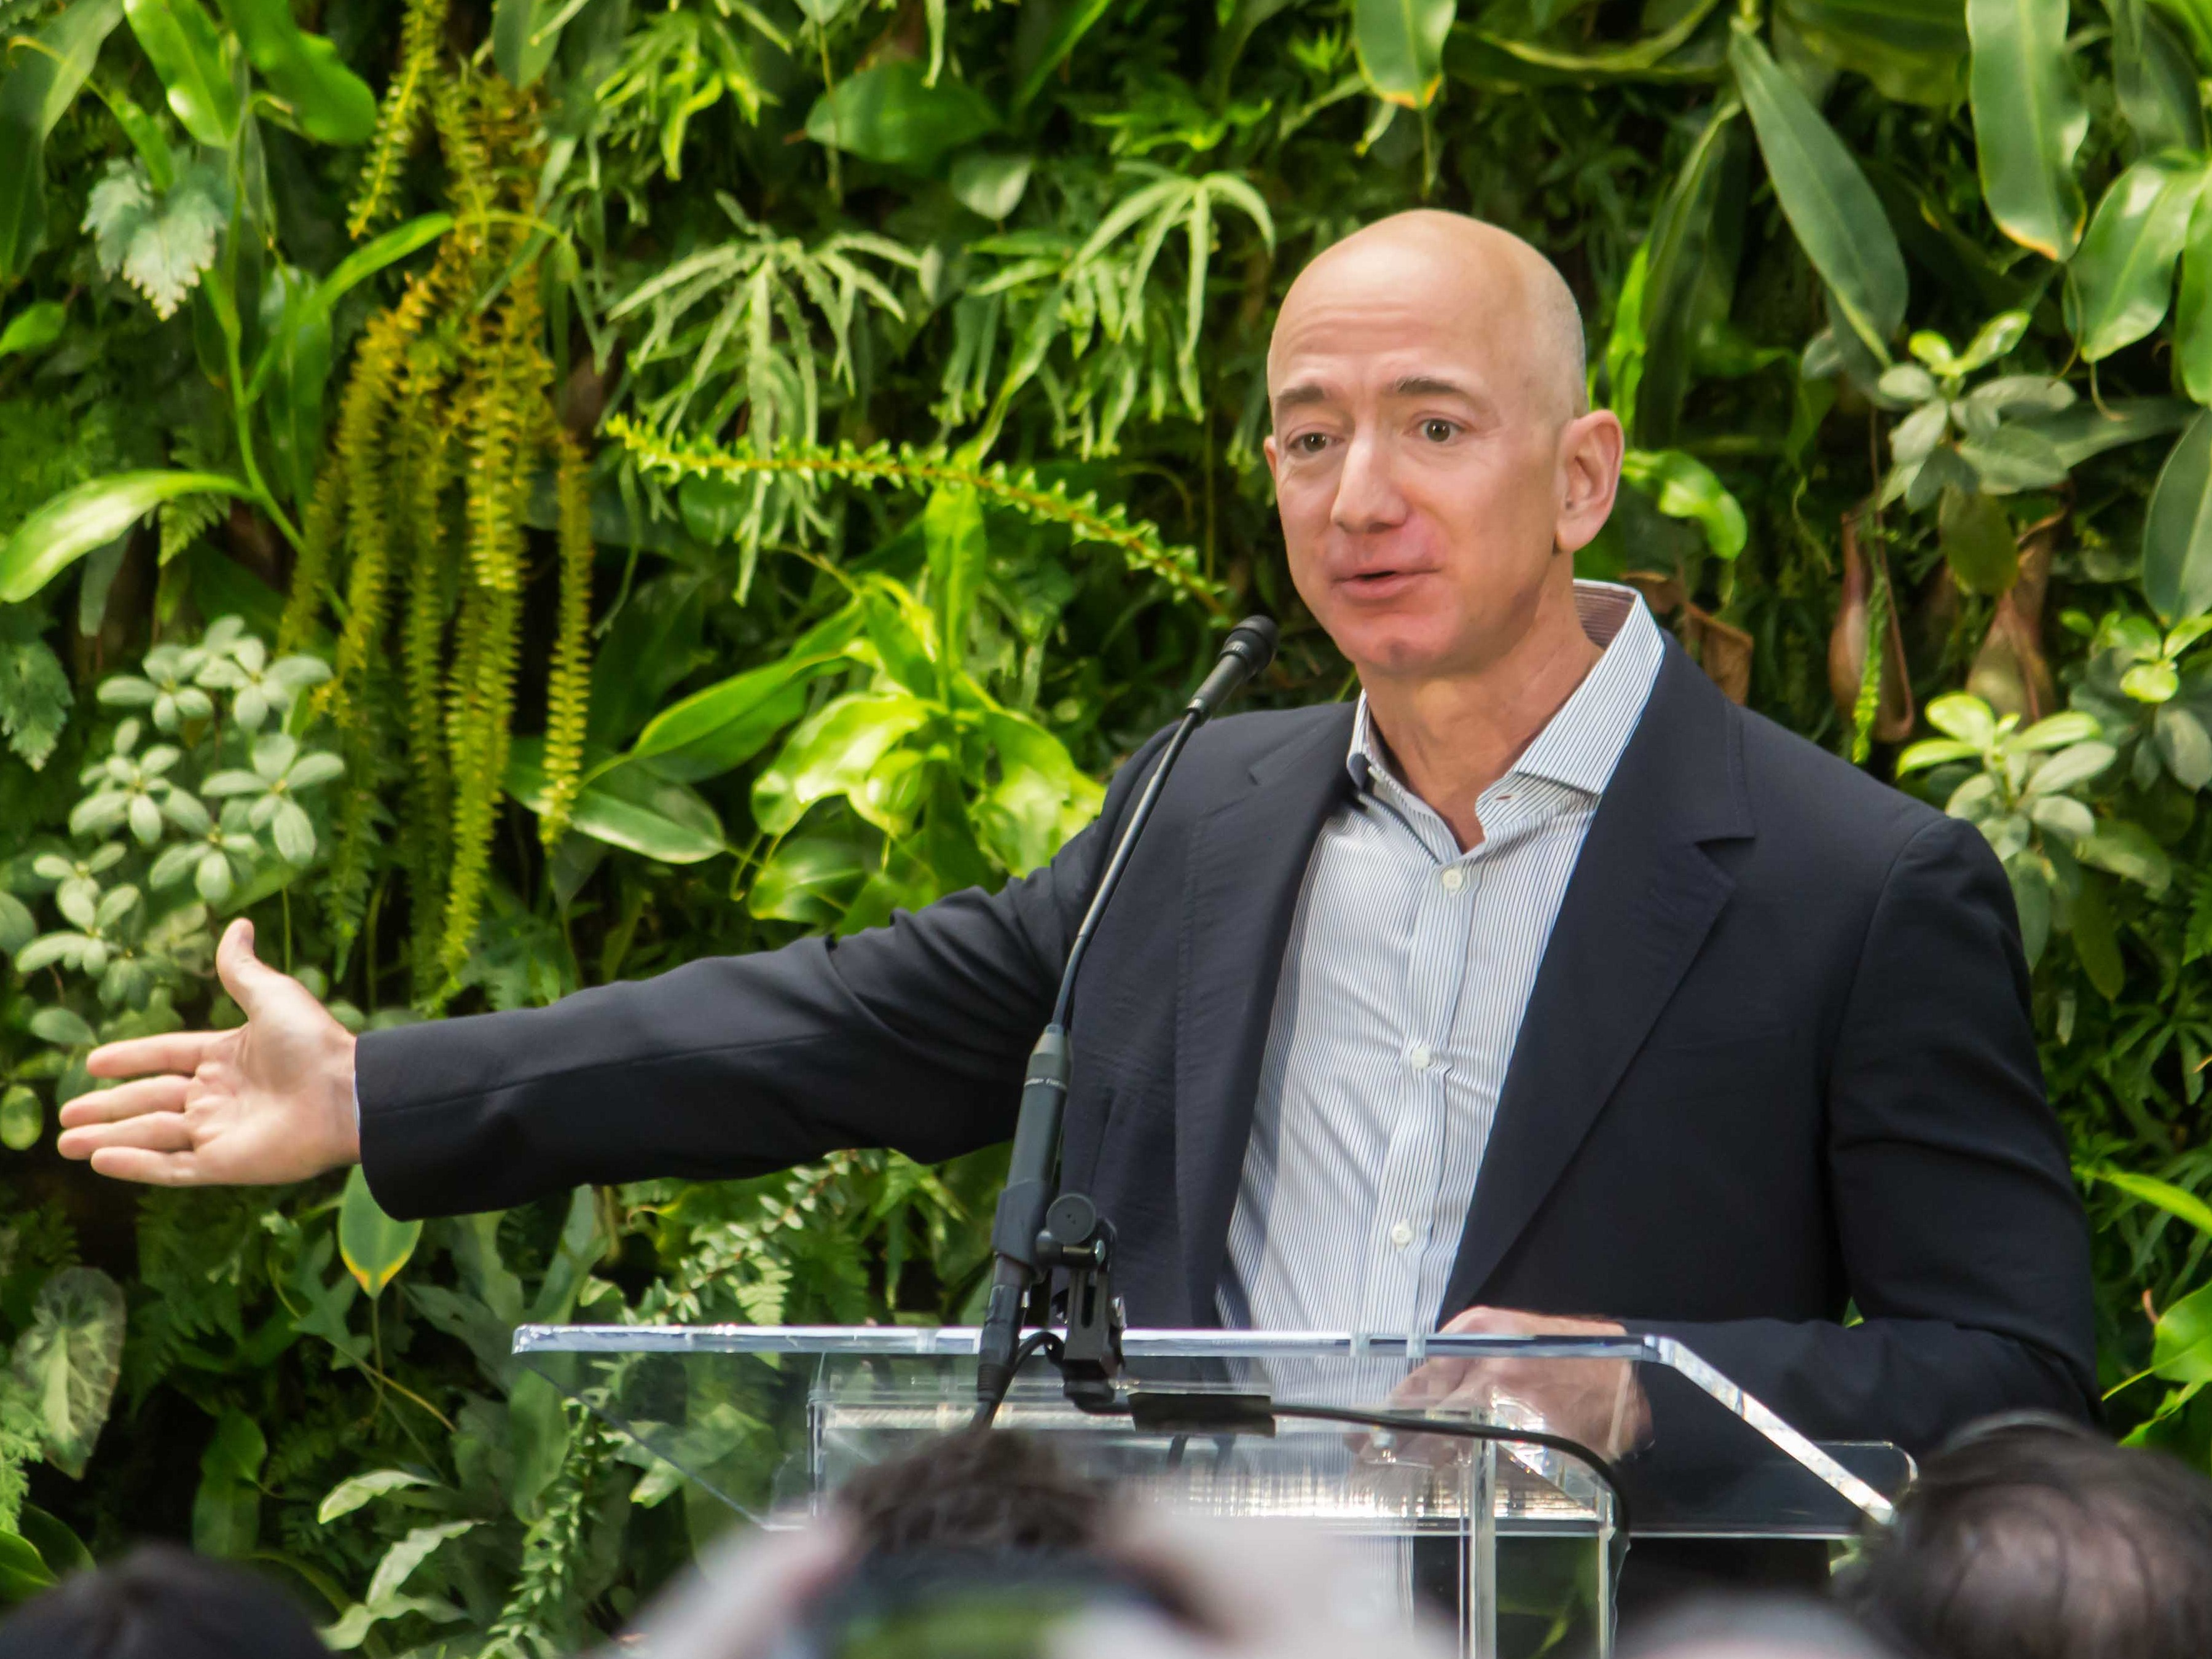 File:Jeff Bezos at Amazon Spheres Grand Opening in Seattle - 2018 (39074799225) (cropped3).jpg - Wikimedia Commons